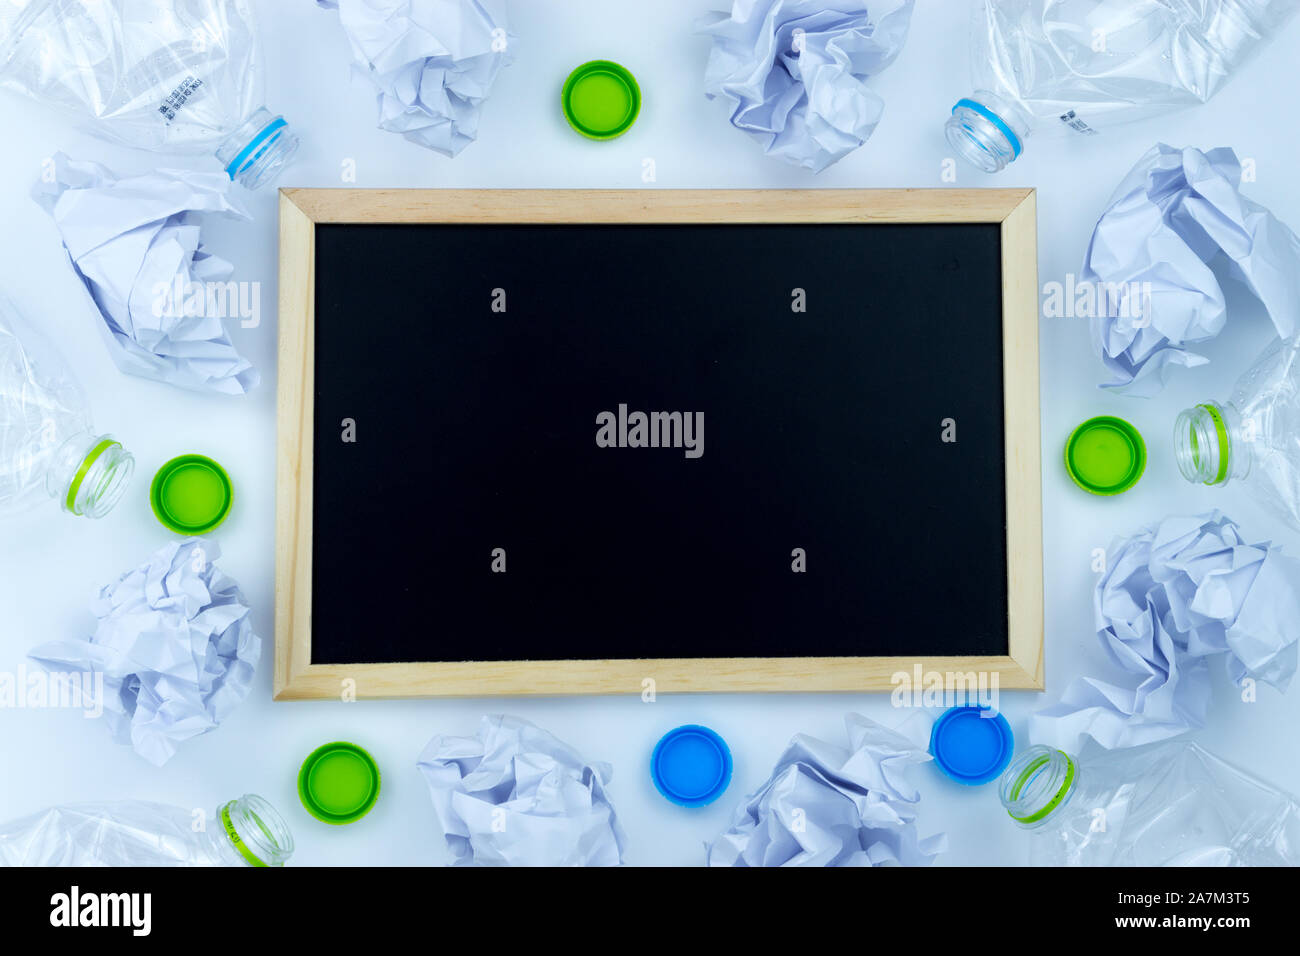 Recycling. The frame of used plastic bottle, blackboard and crumpled paper on white background with copy space. Recycle and reuse concept Stock Photo